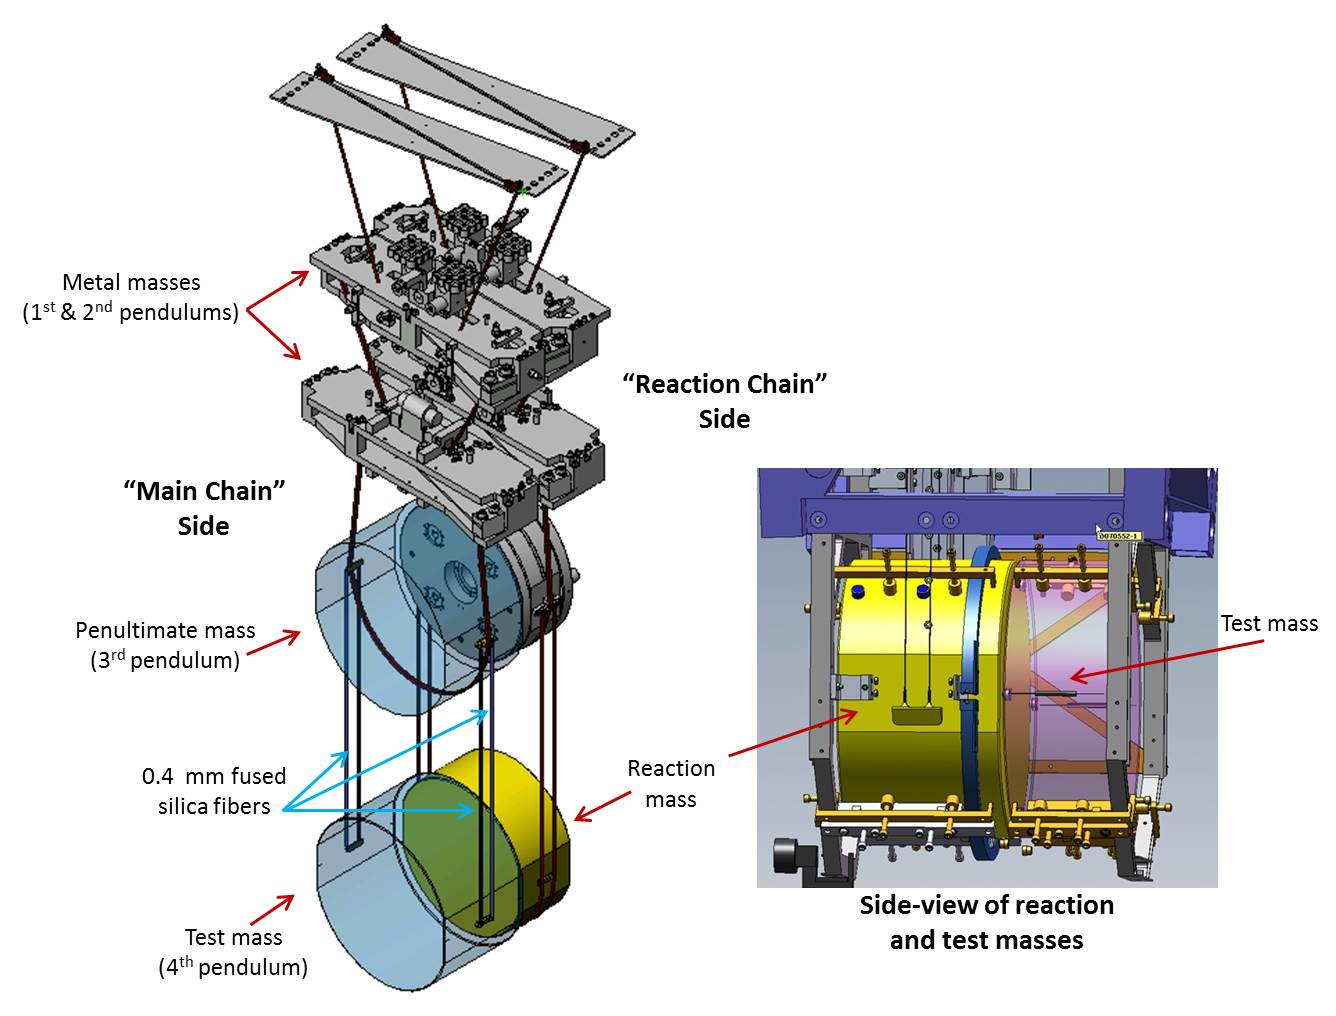 vibration isolation labeled quad with side view [ 1336 x 1016 Pixel ]